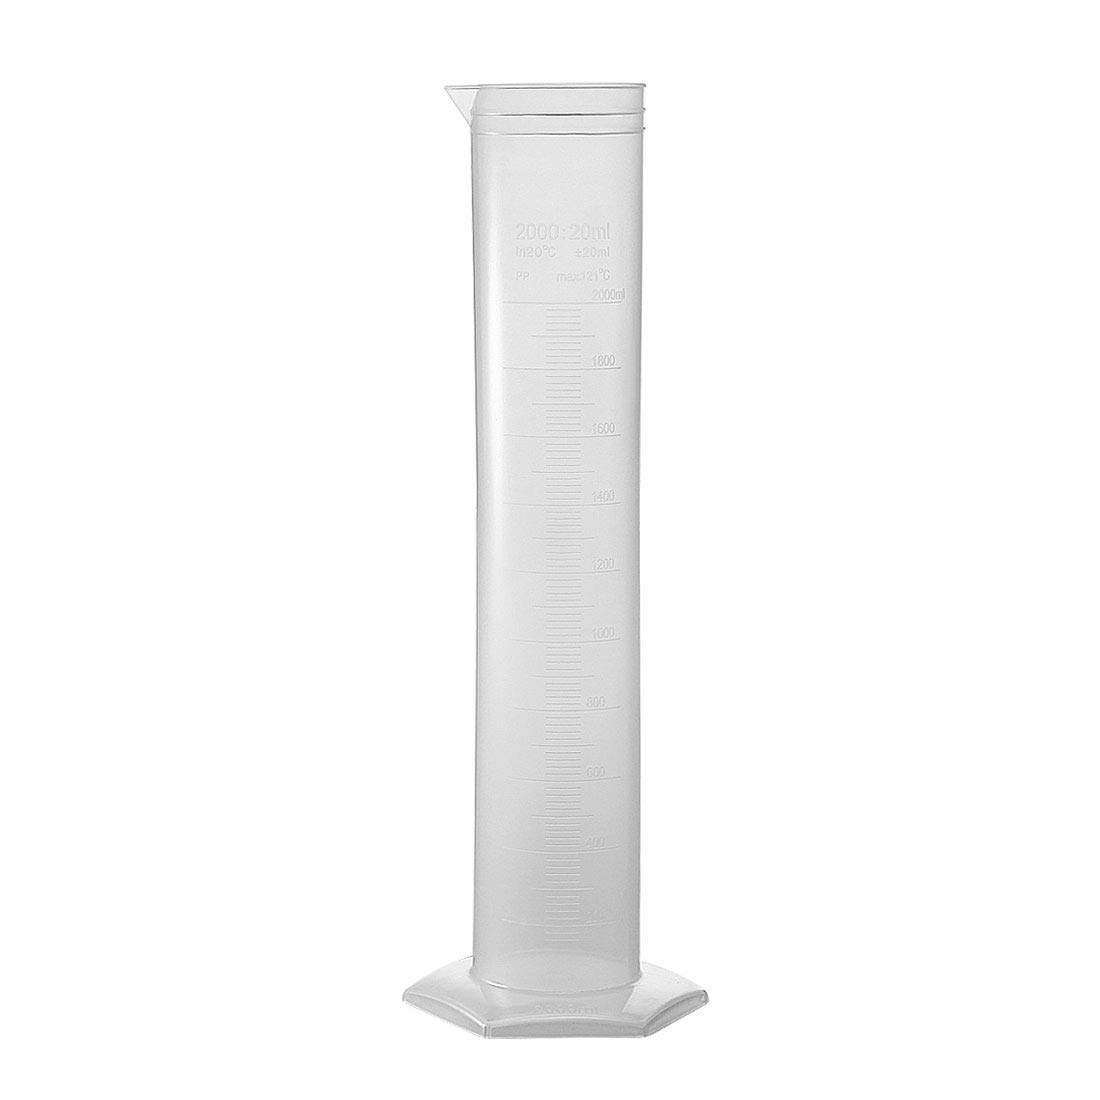 ZCHXD 2000ml Laboratory Measurements Clear White Plastic Hex Base Graduated Cylinder for Chemical Measuring